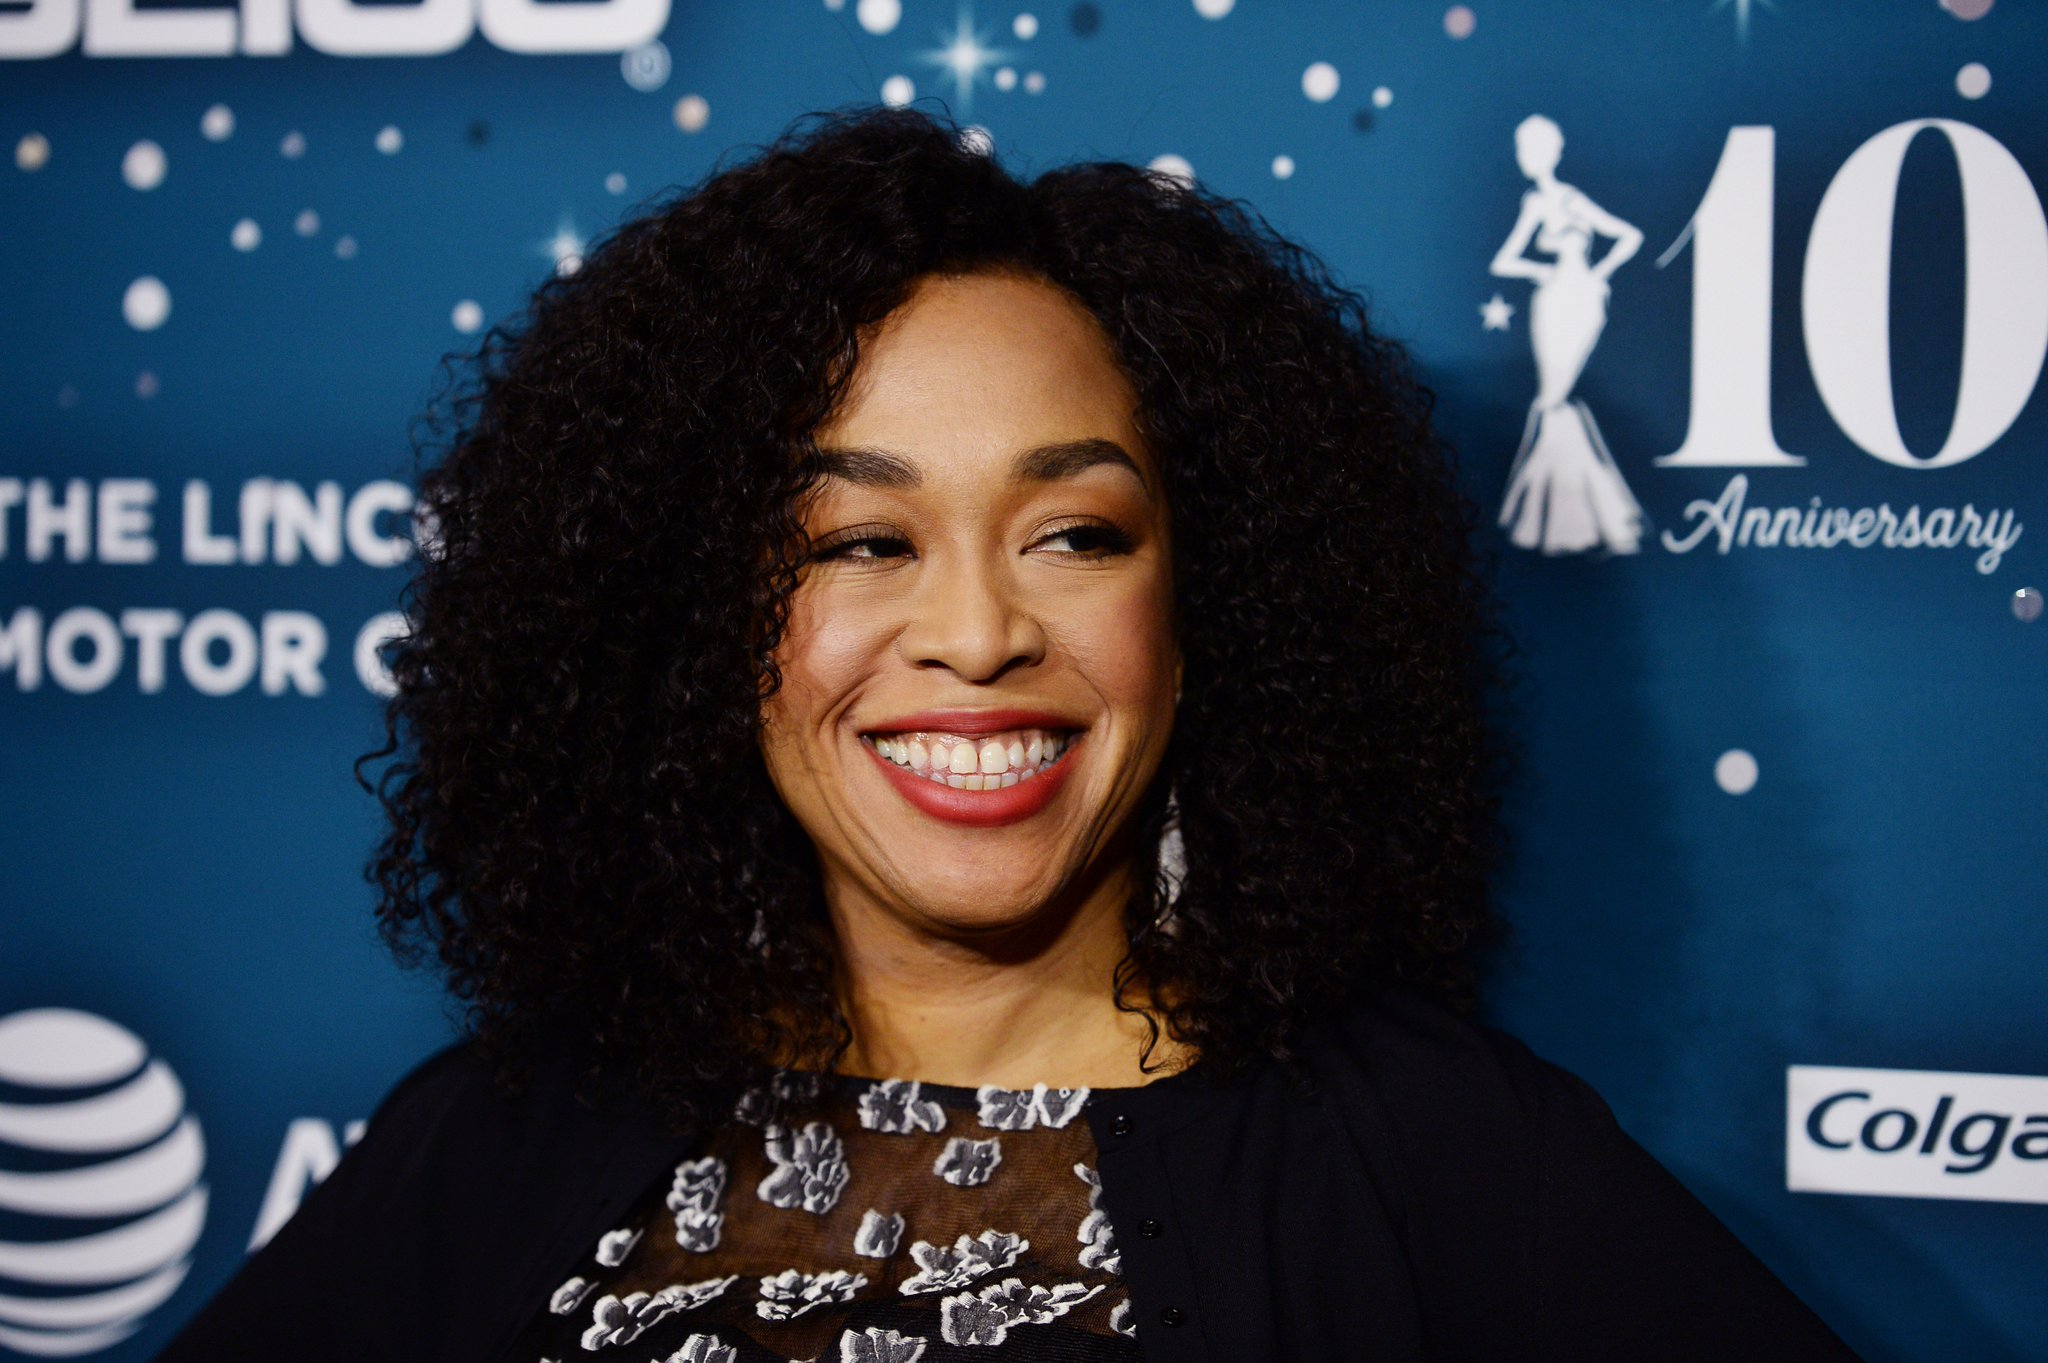 Shonda Rhimes Flawlessly Explains How She Was Treated After Losing 100 Pounds https://t.co/w8yRoxfXce https://t.co/lpE2AFm0no